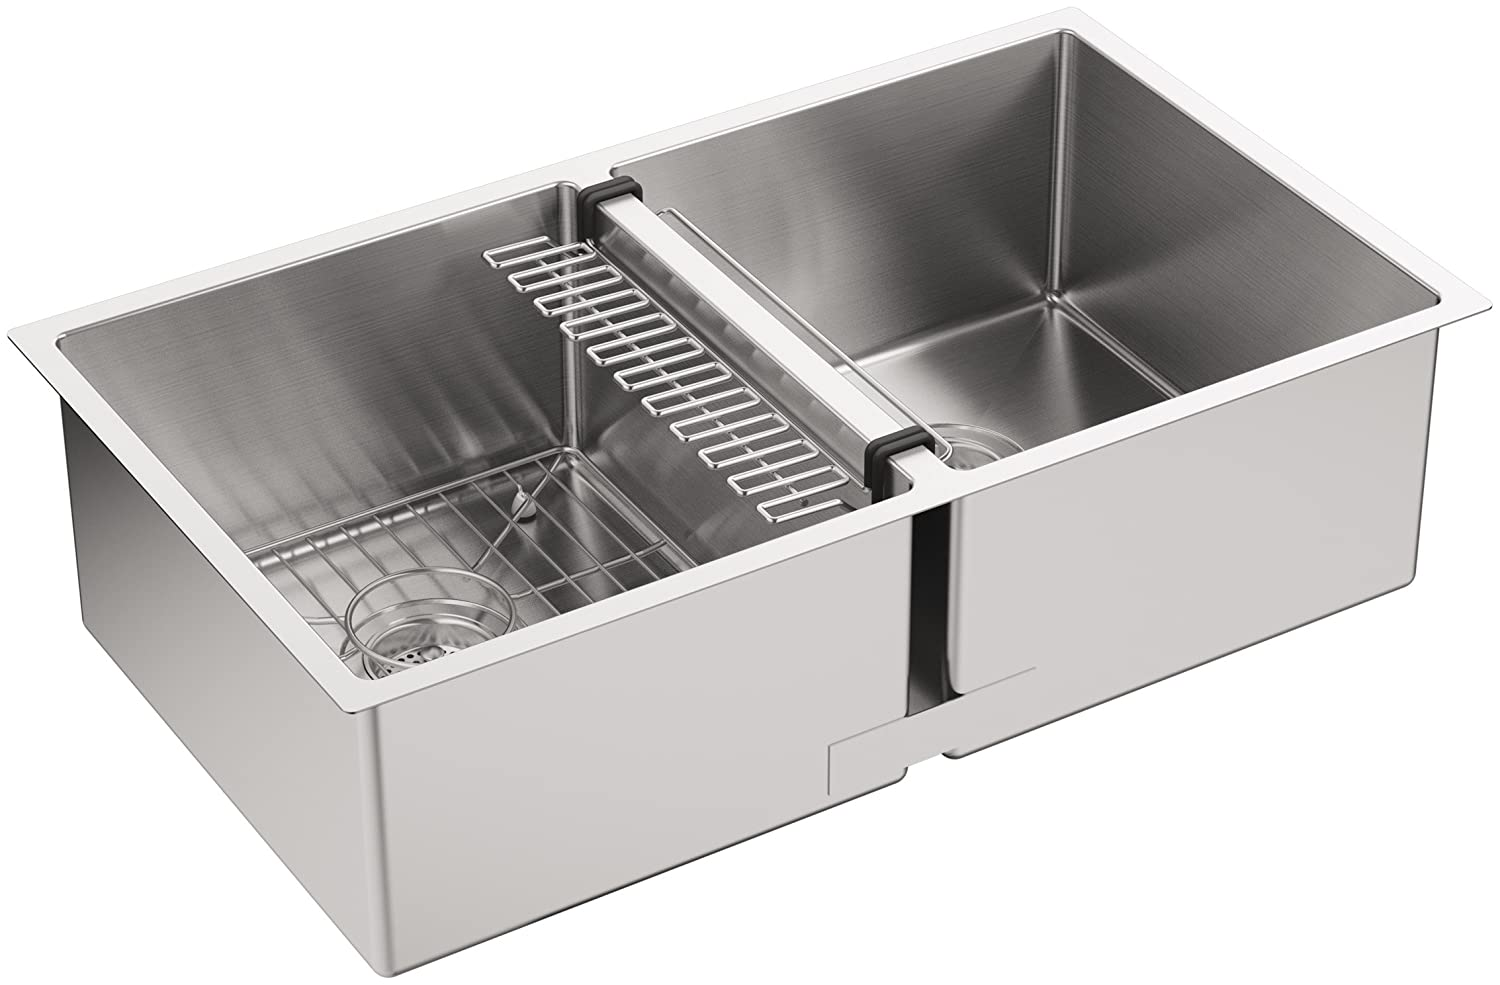 kohler k5281na strive 32 x x 9516inch undermount doubleequal kitchen sink with basin rack stainless steel 1pack double bowl sinks